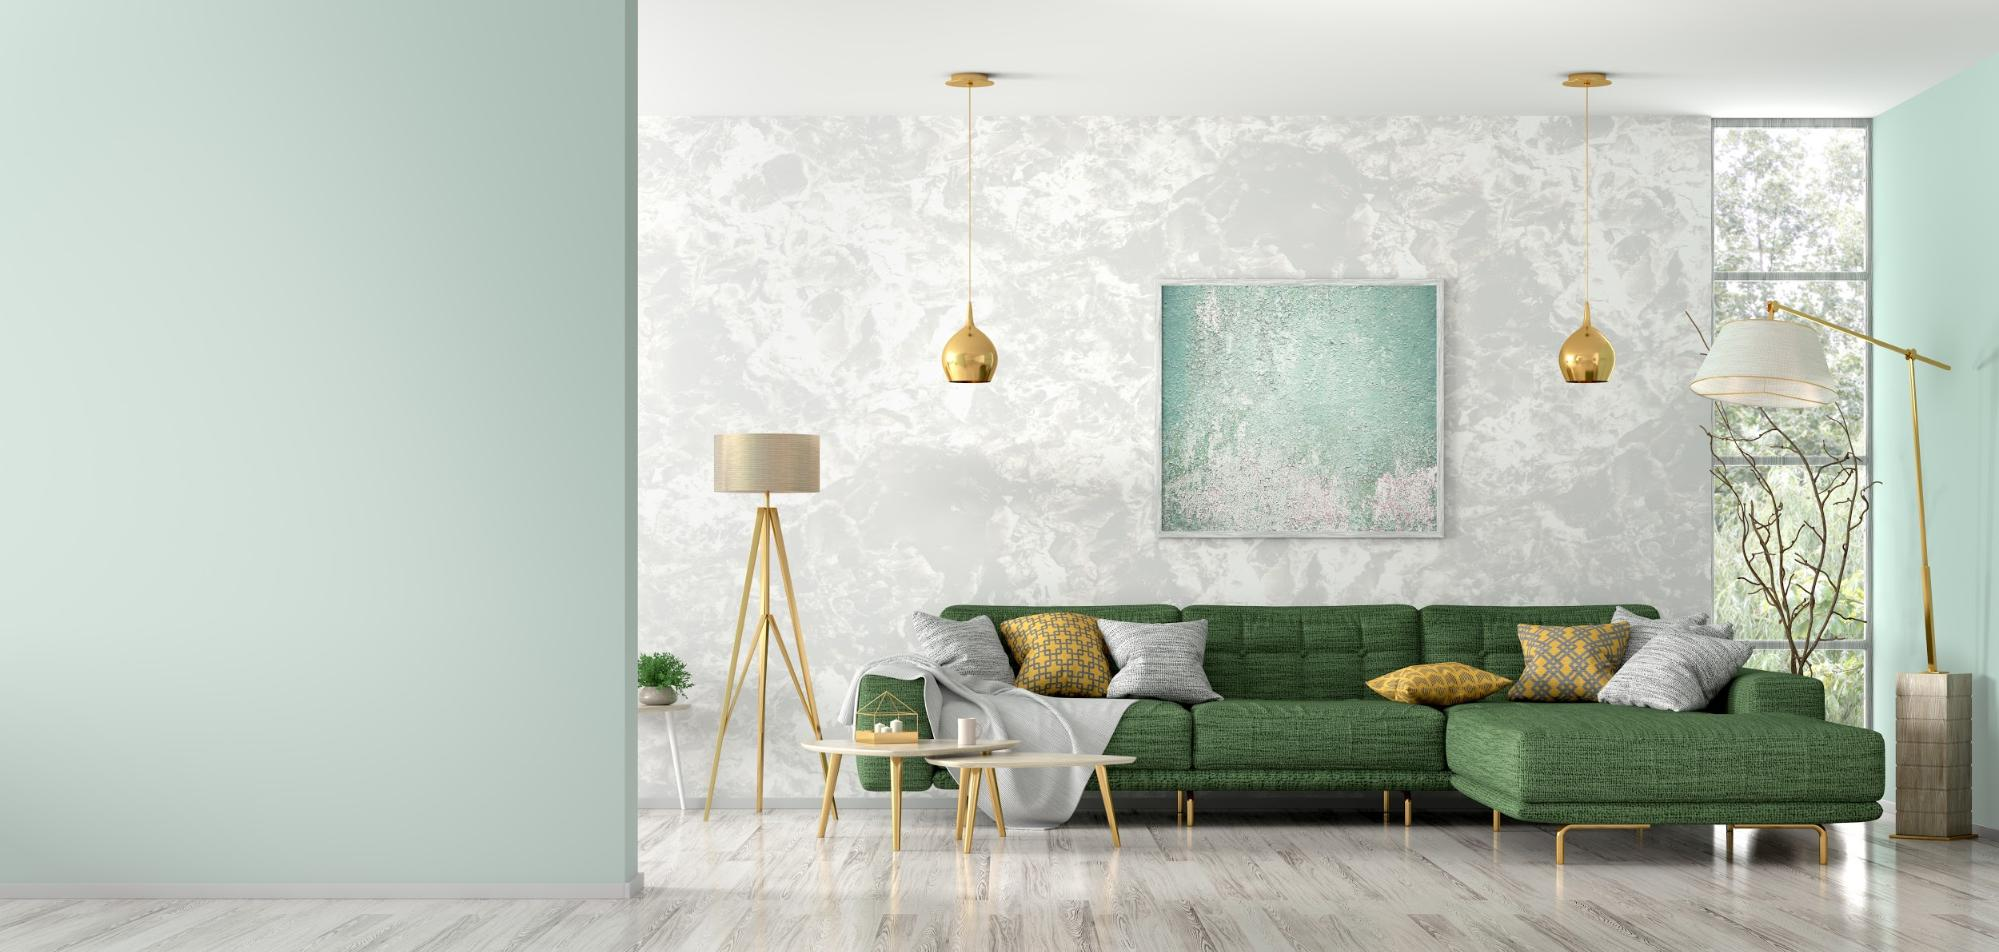 How to make your living space pop with a green sofa and other green accents